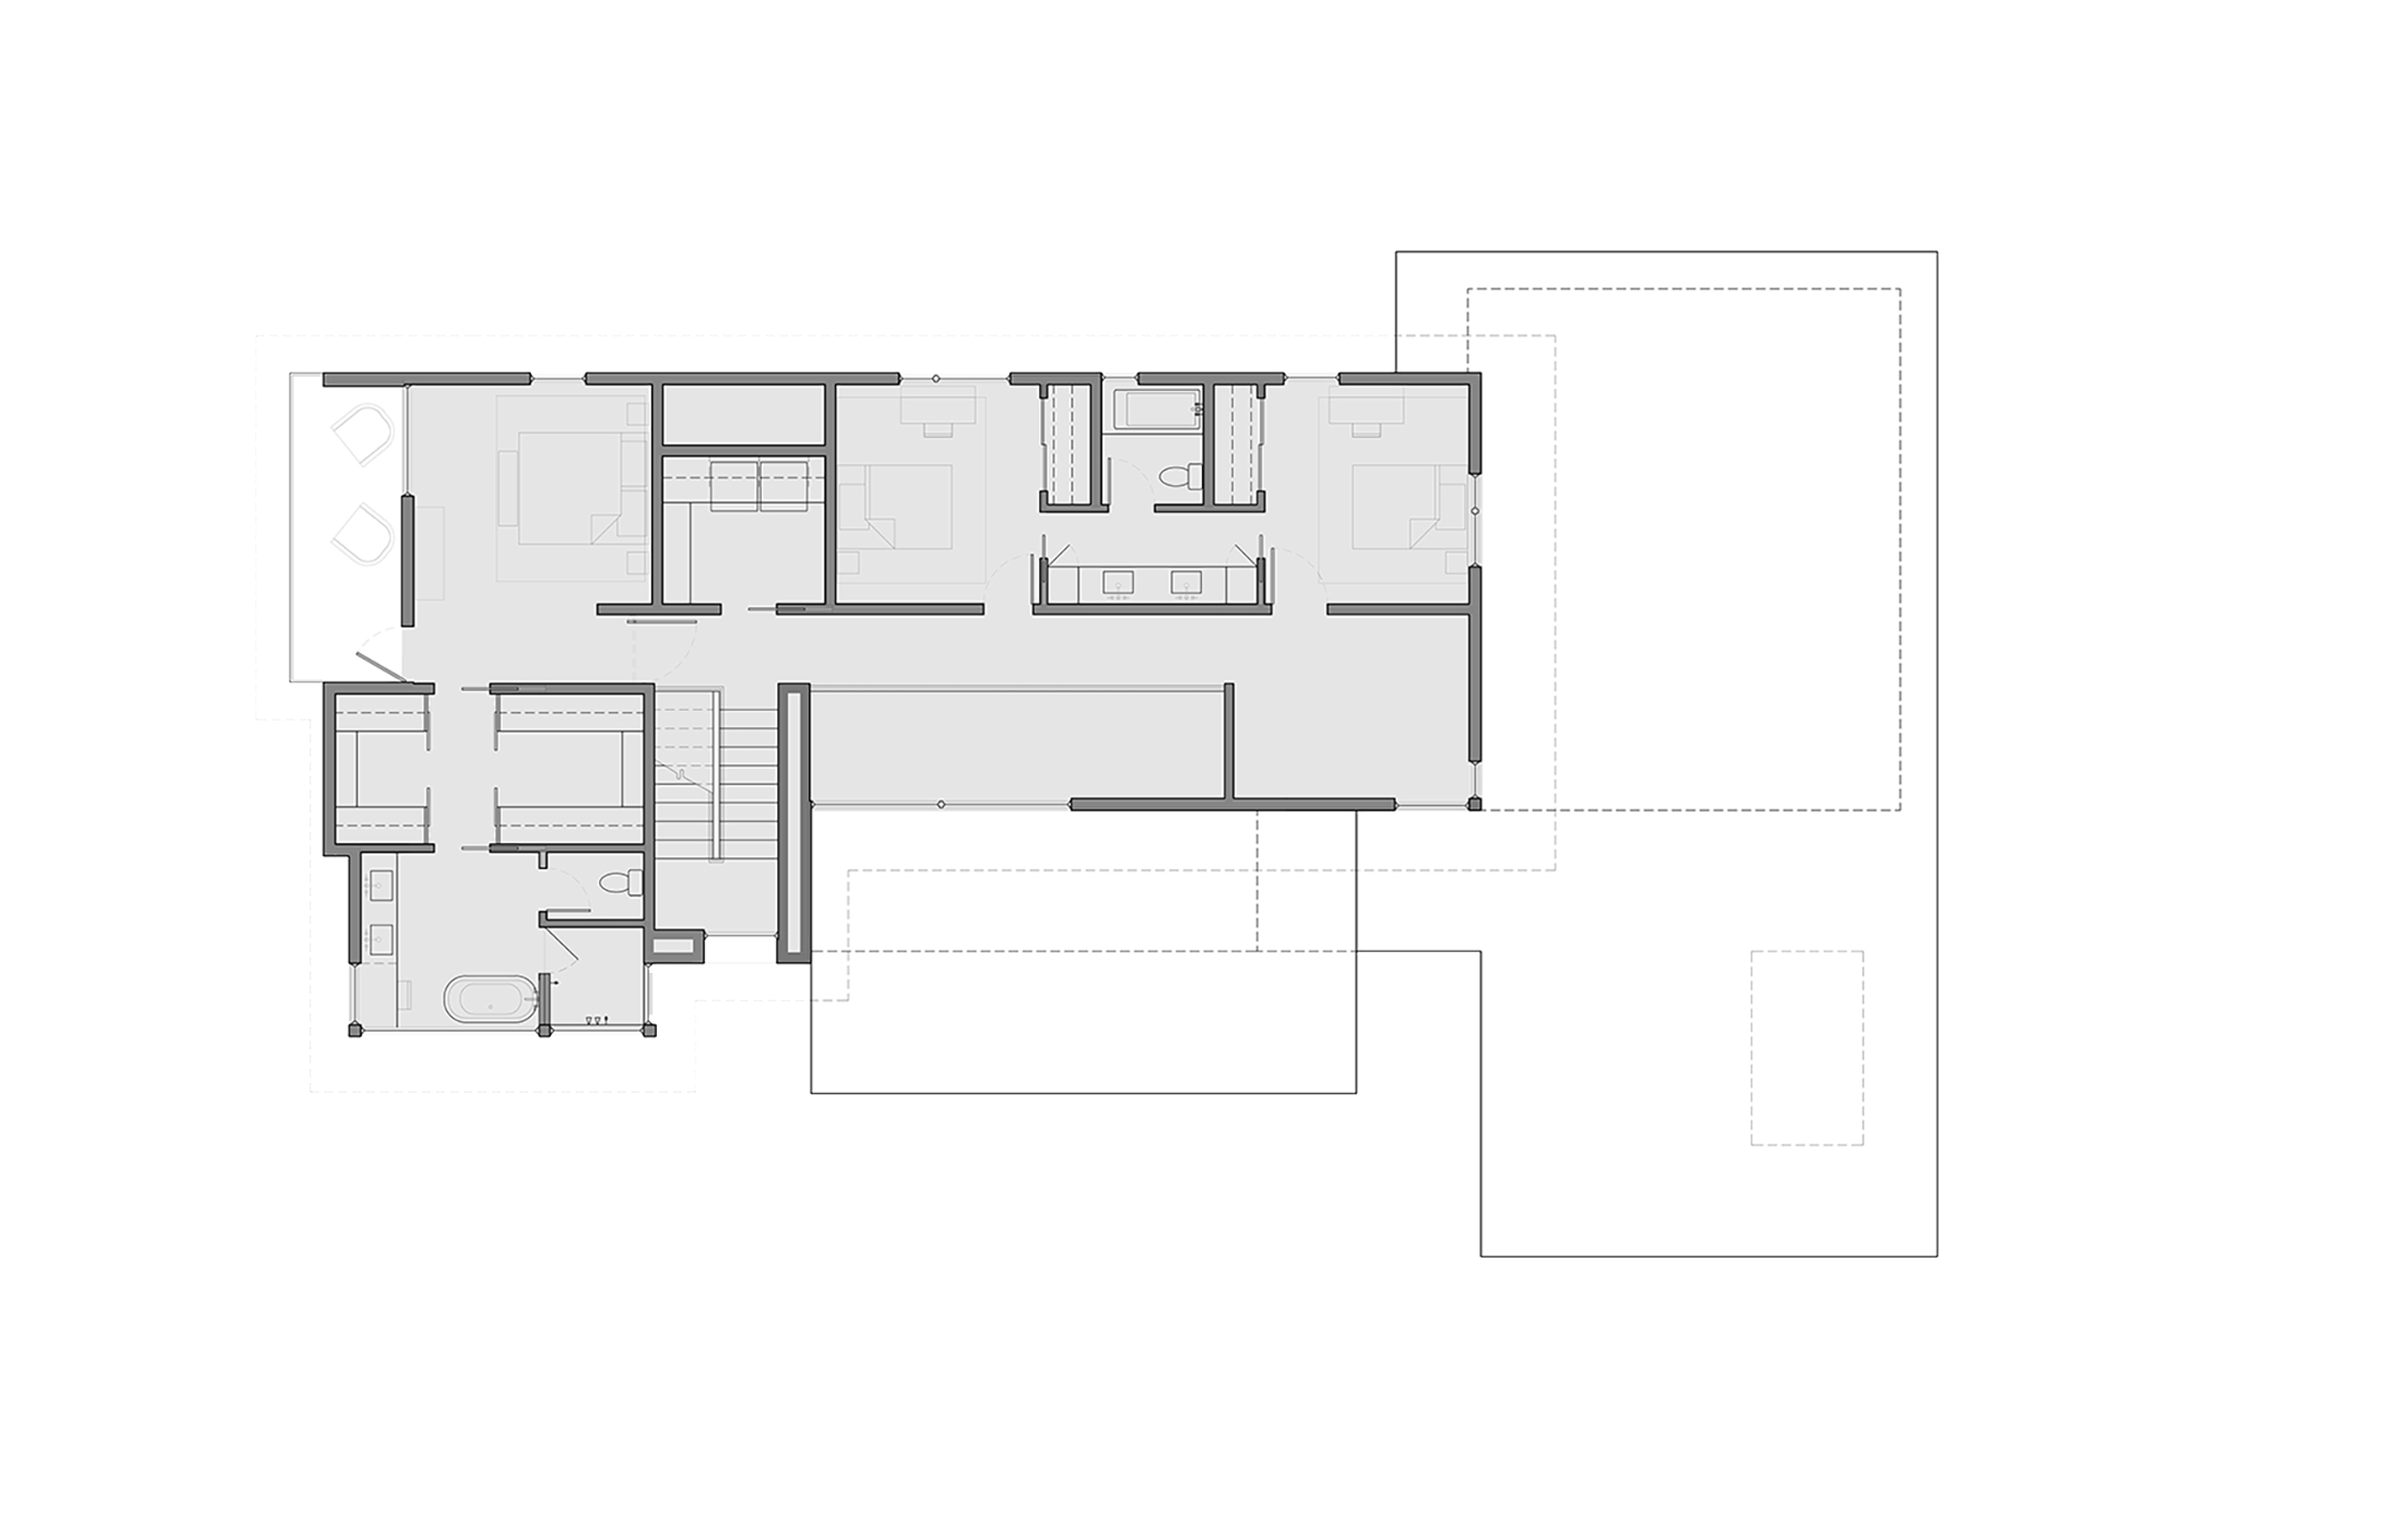 Woodberry Residence Second Floor Plan.jpg